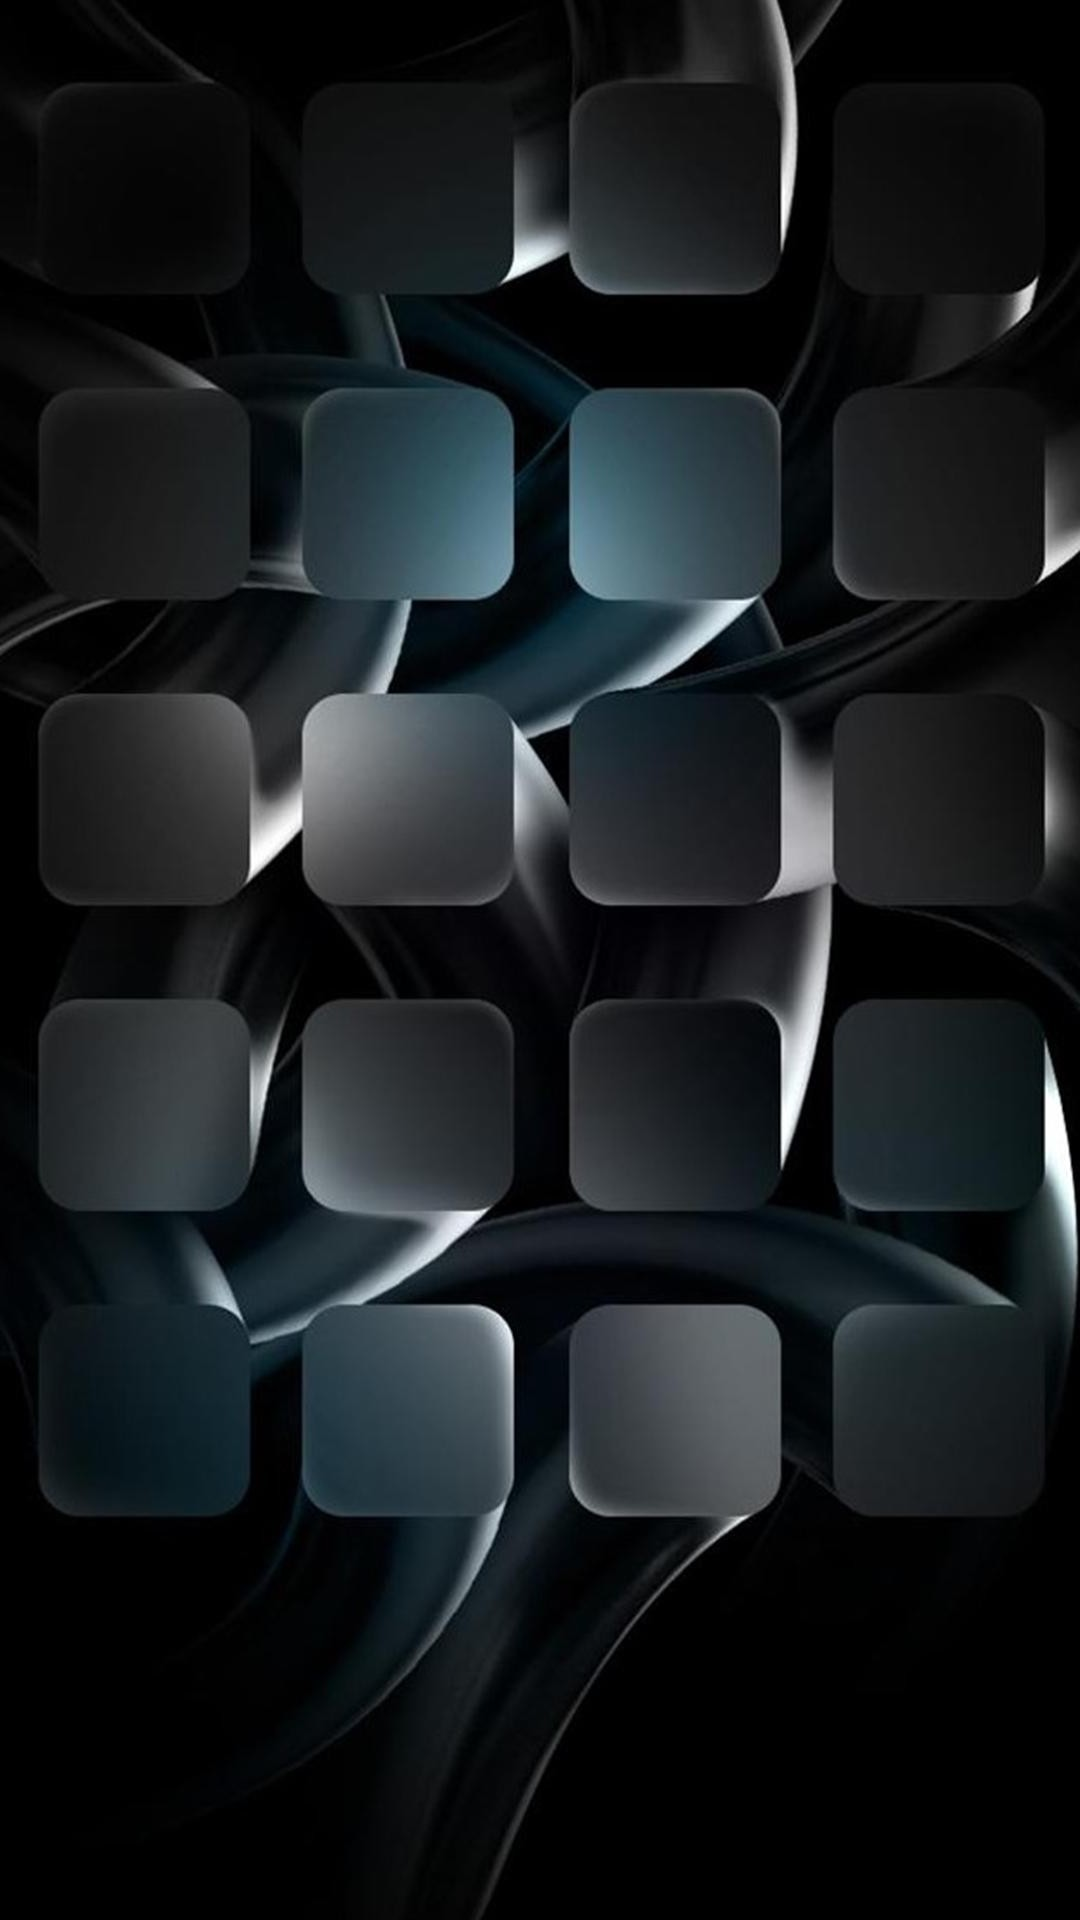 1080x1920 Free Abstract Phone Wallpapers Download HD.